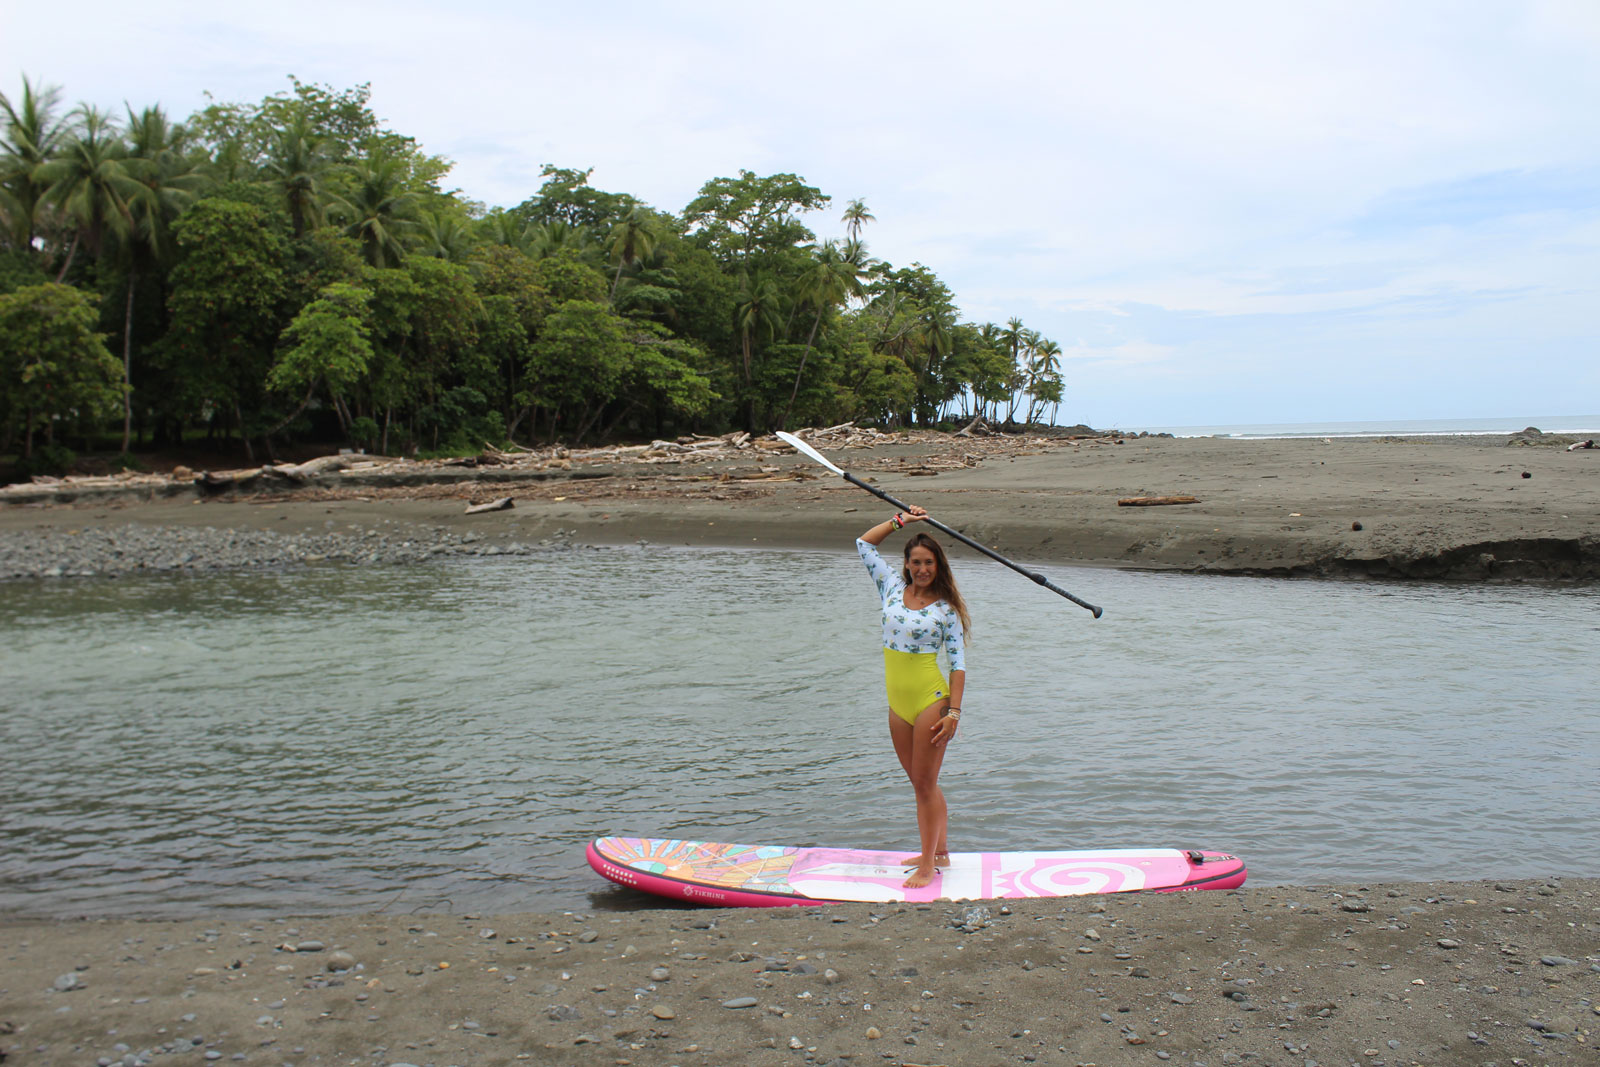 Your-SUP-Travel-Guide-to-Costa-Rica-with-Ciretta-Wanderlust-river